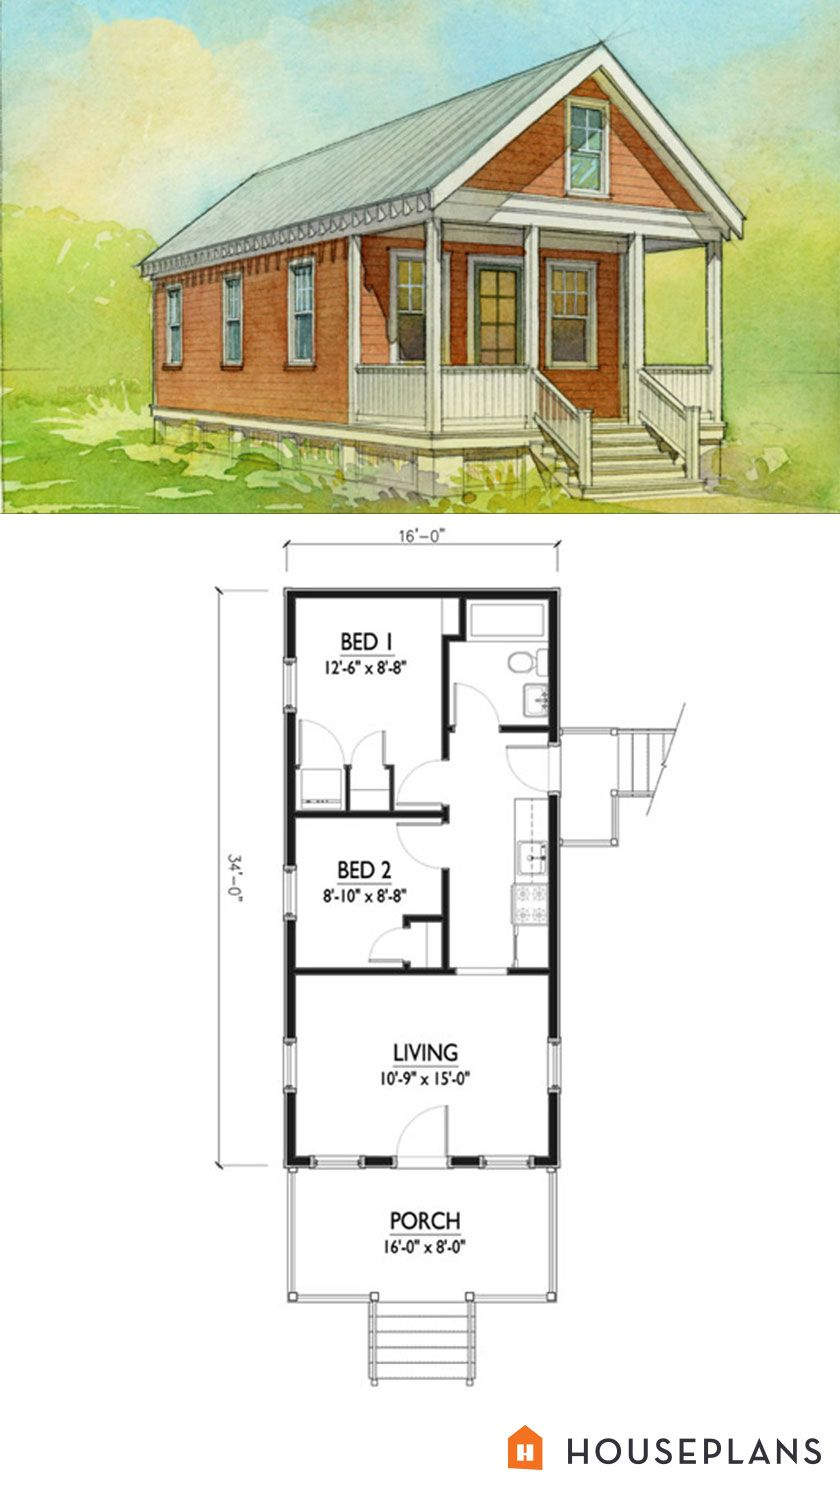 Small katrina cottage house plan 500sft 2br 1 bath by for Small house plans images